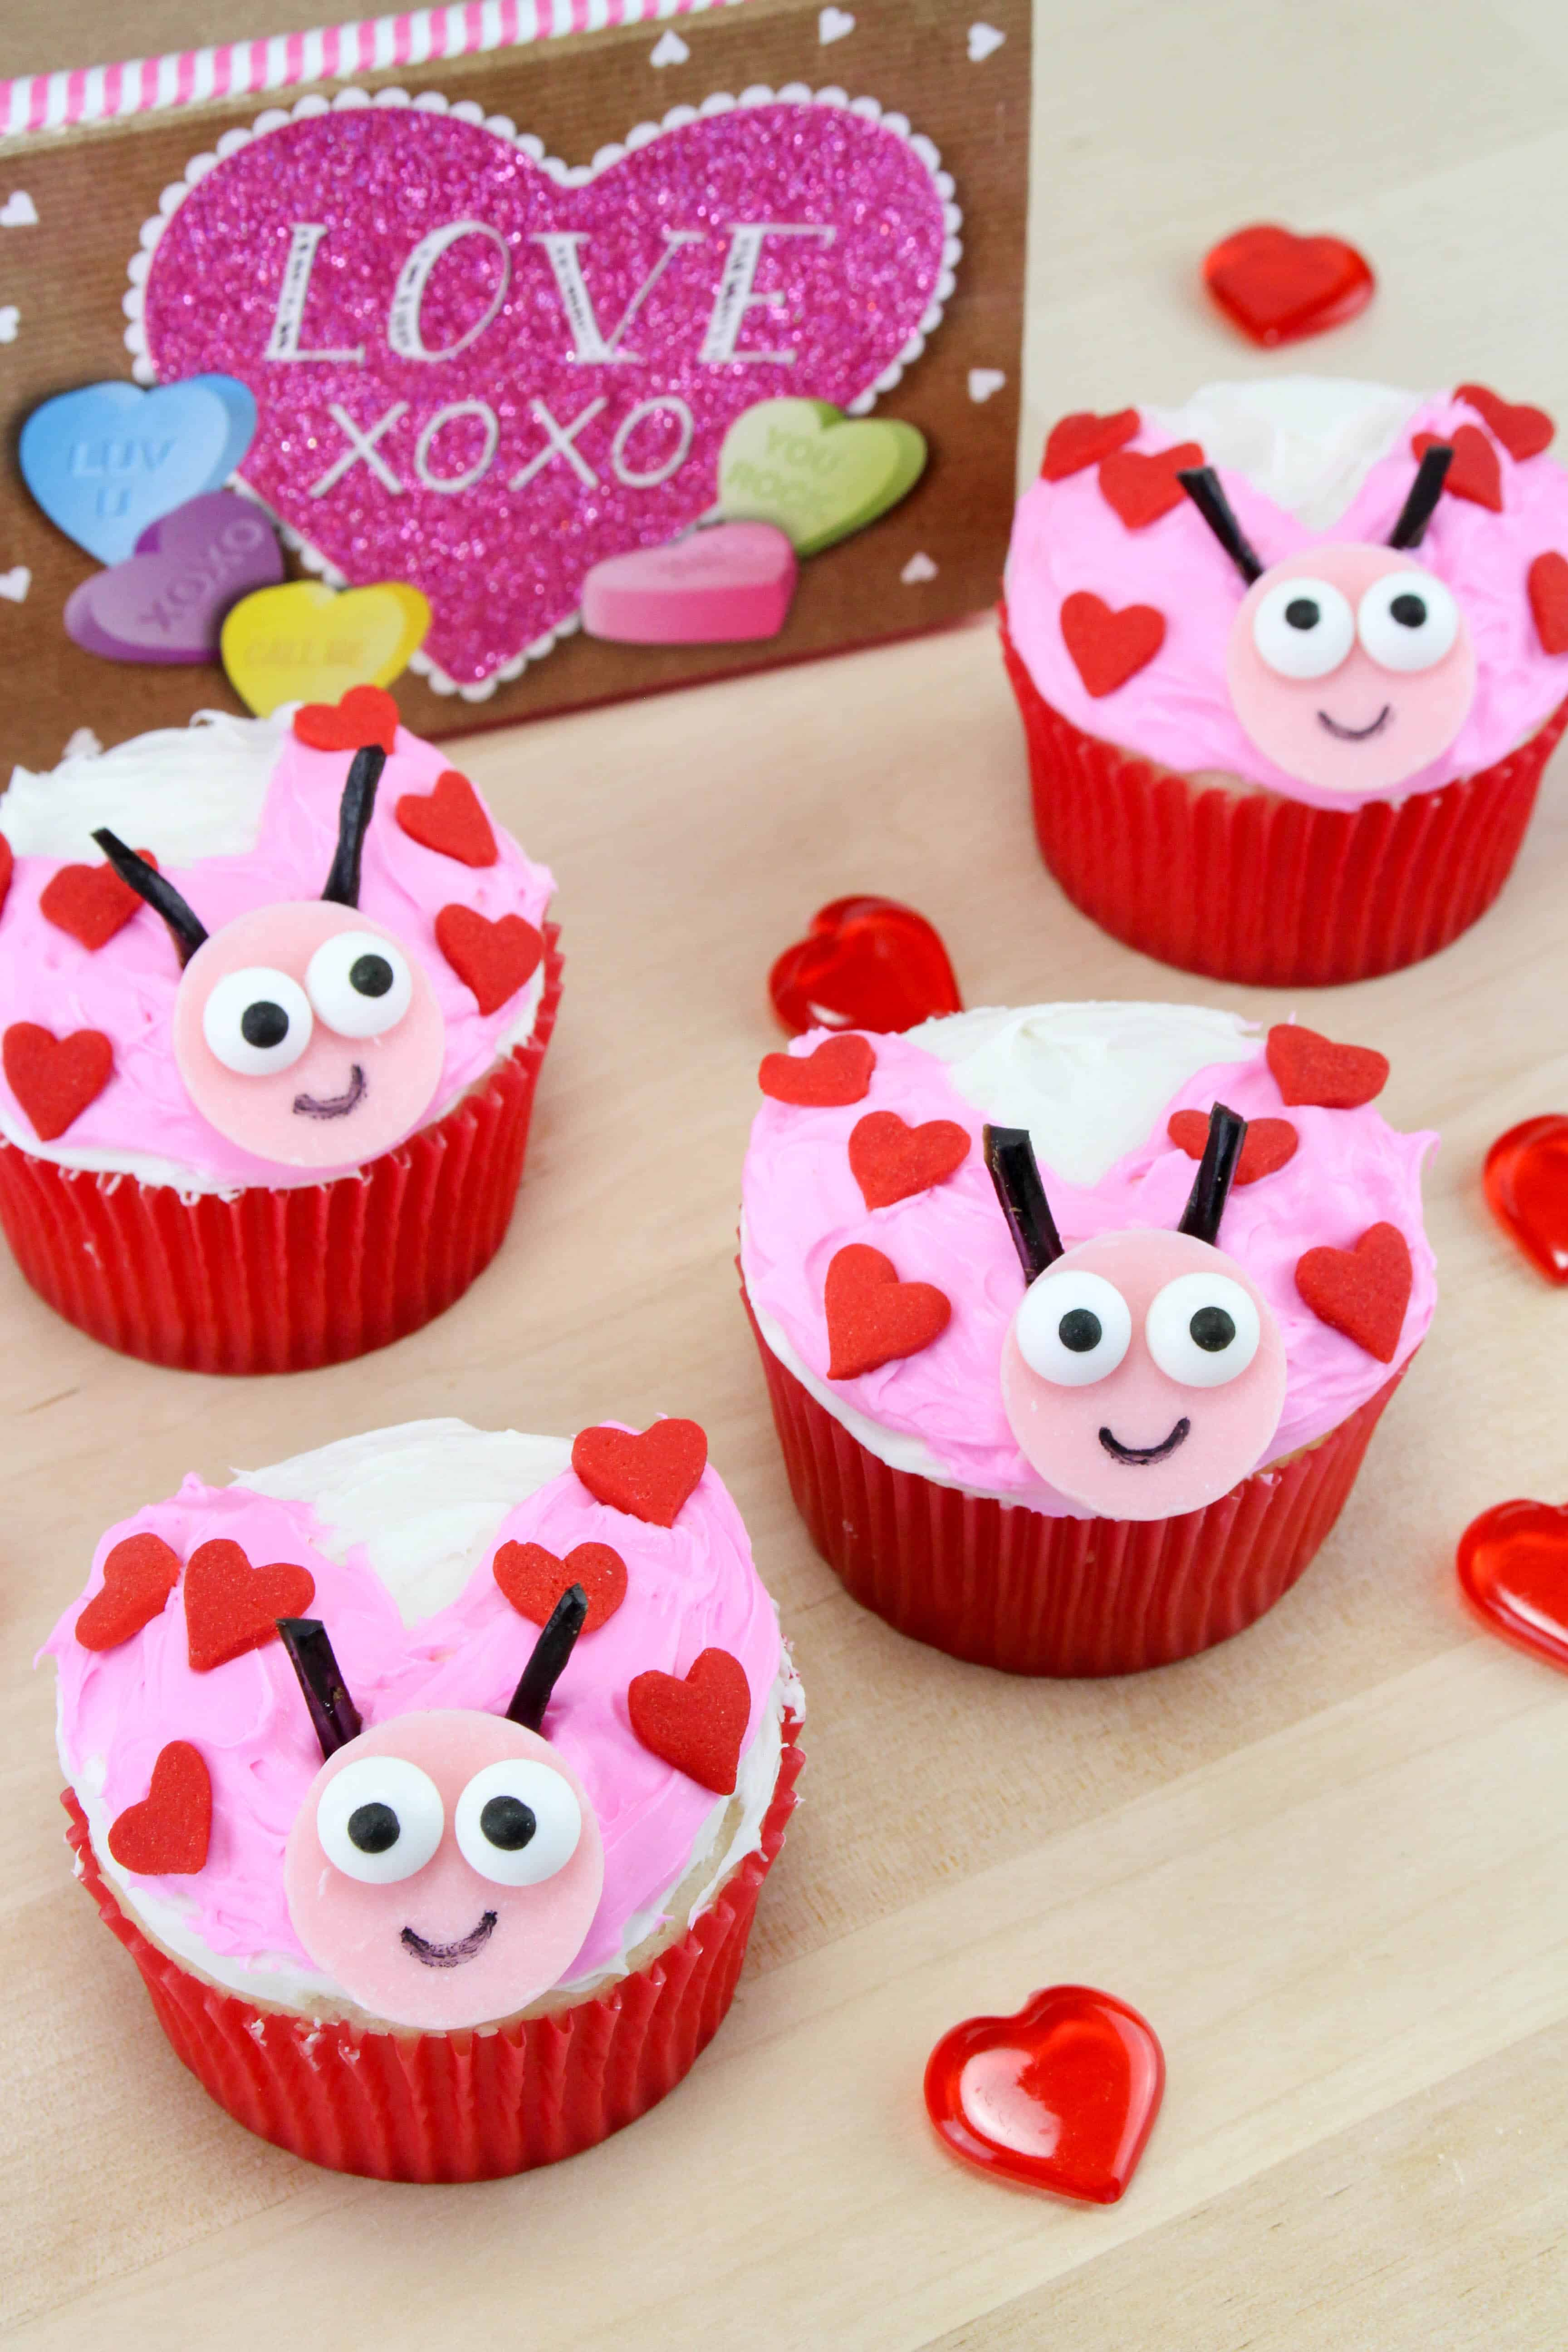 decorating valentines day cupcakes